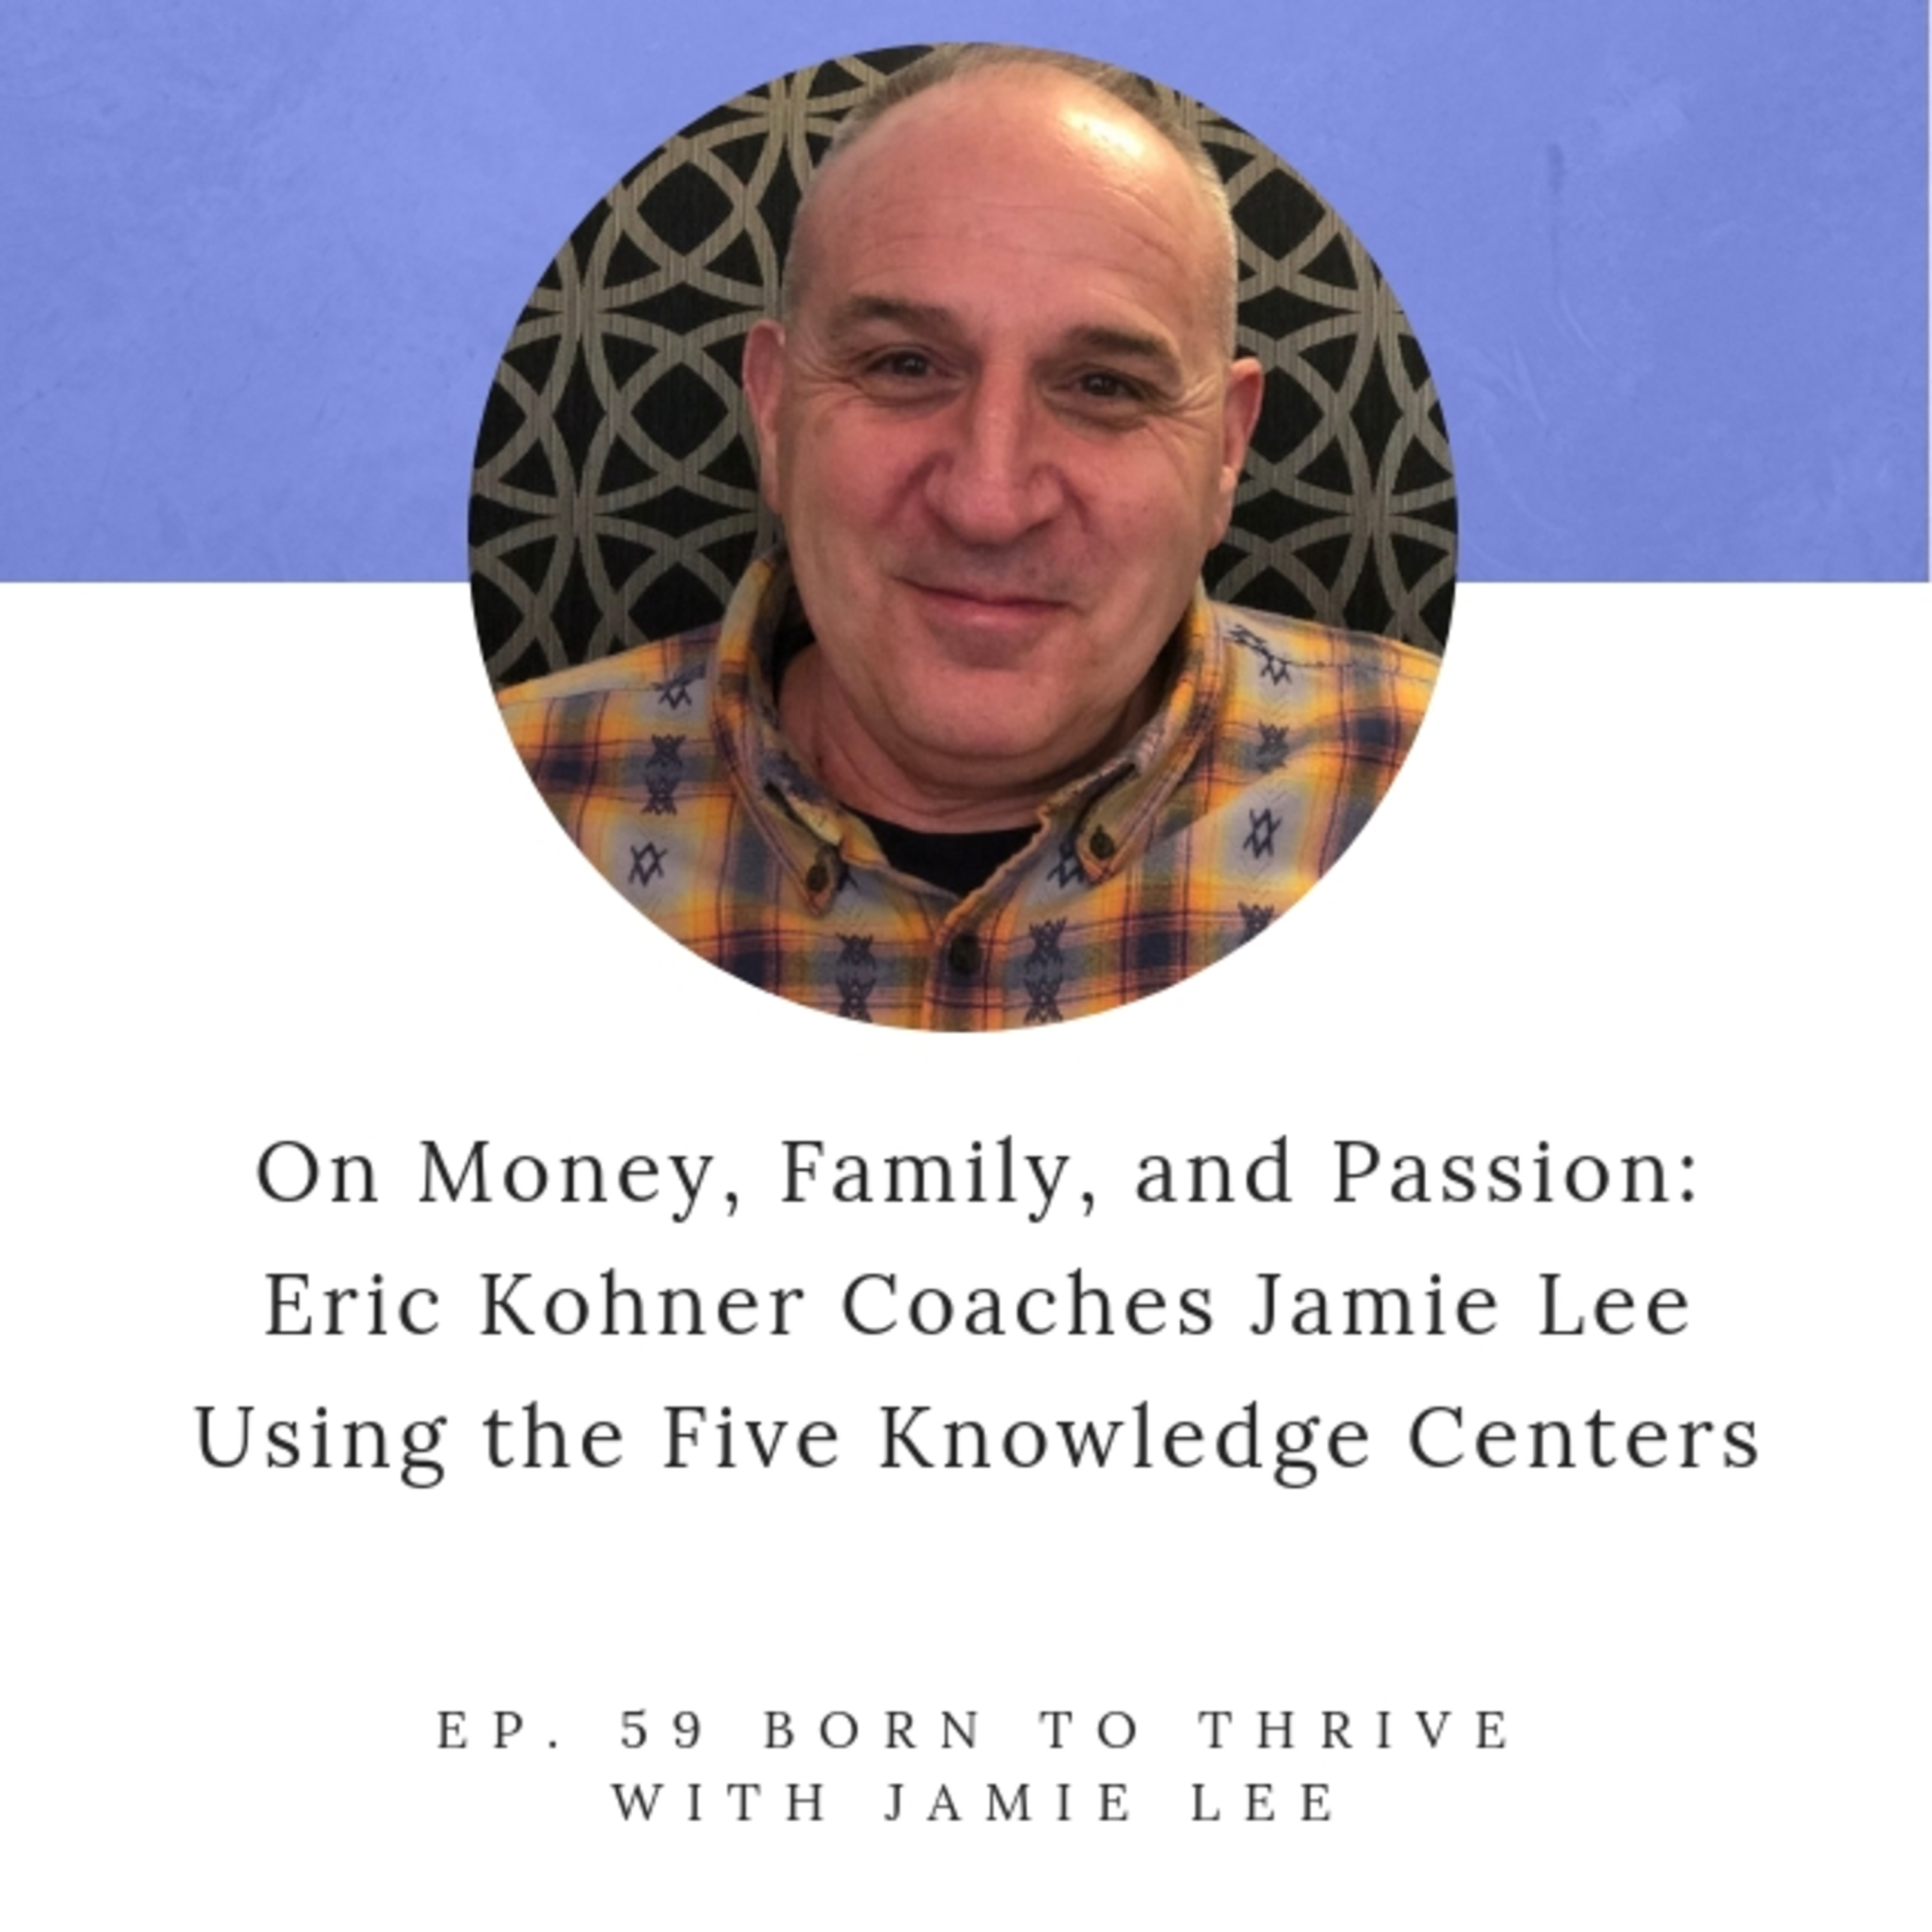 Ep. 59 On Money, Family, and Passion: Eric Kohner Coaches Jamie Lee Using The Five Knowledge Centers